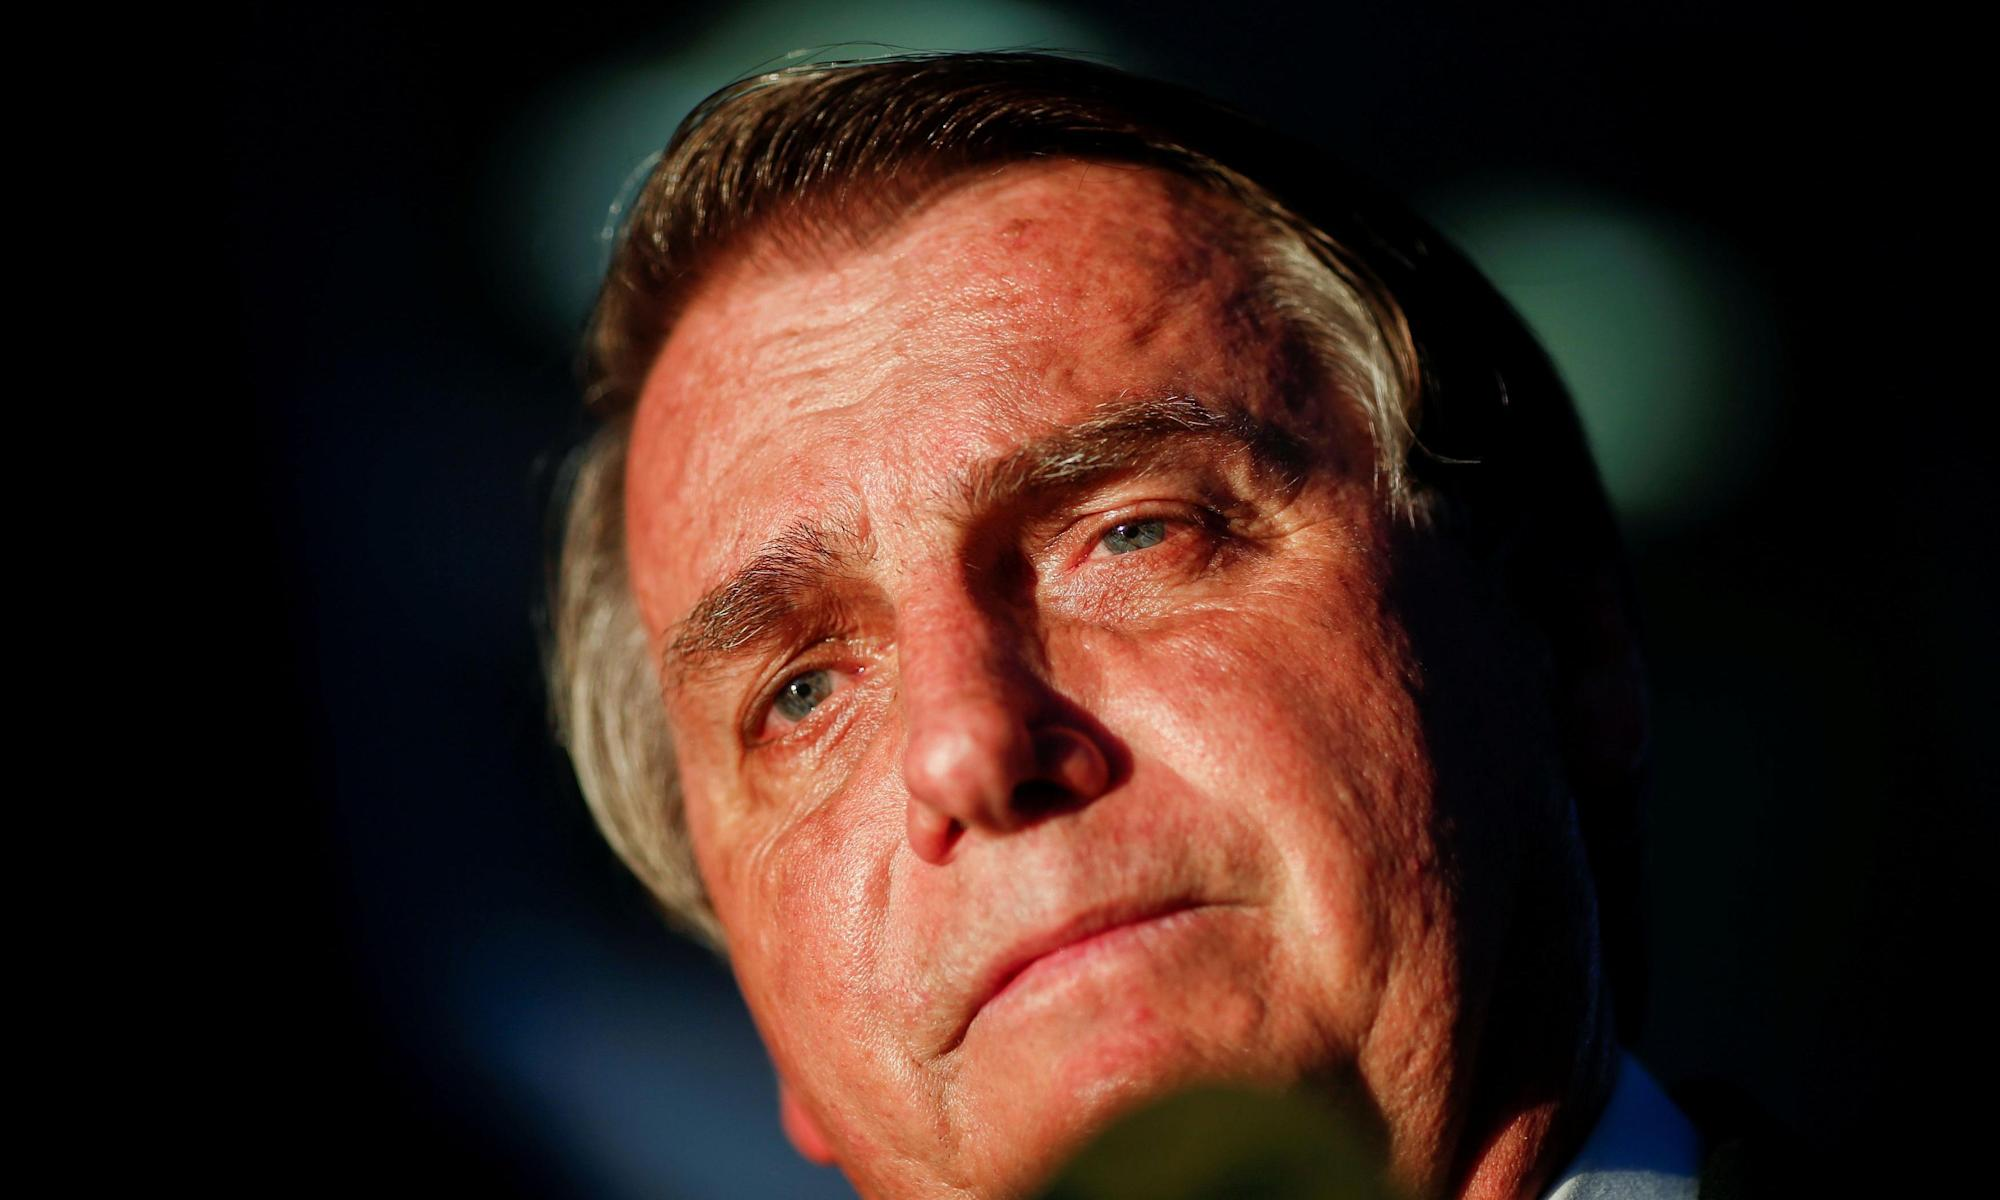 Bolsonaro in hospital as hiccups persist for more than 10 days